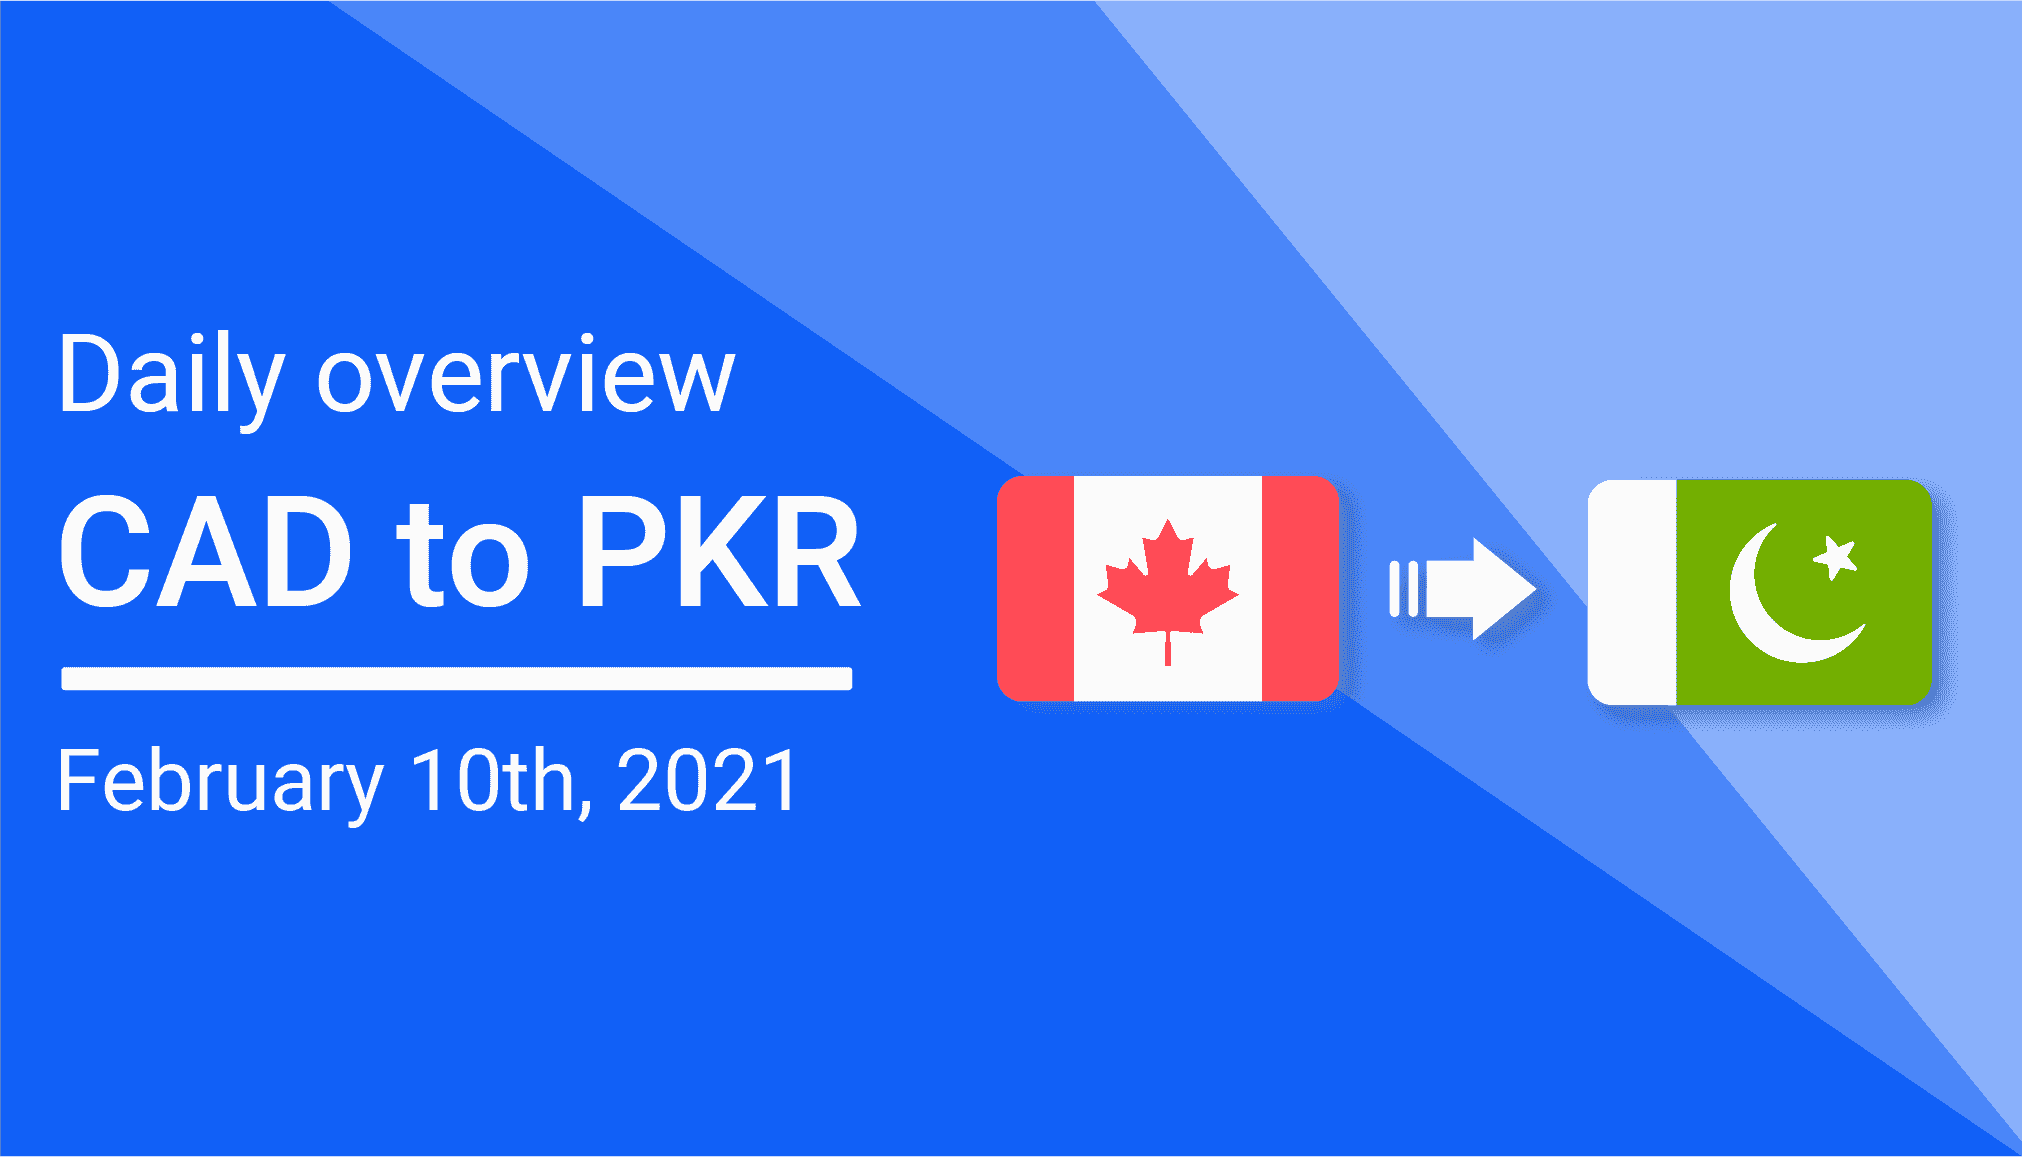 CAD to PKR Daily Overview: February 10th